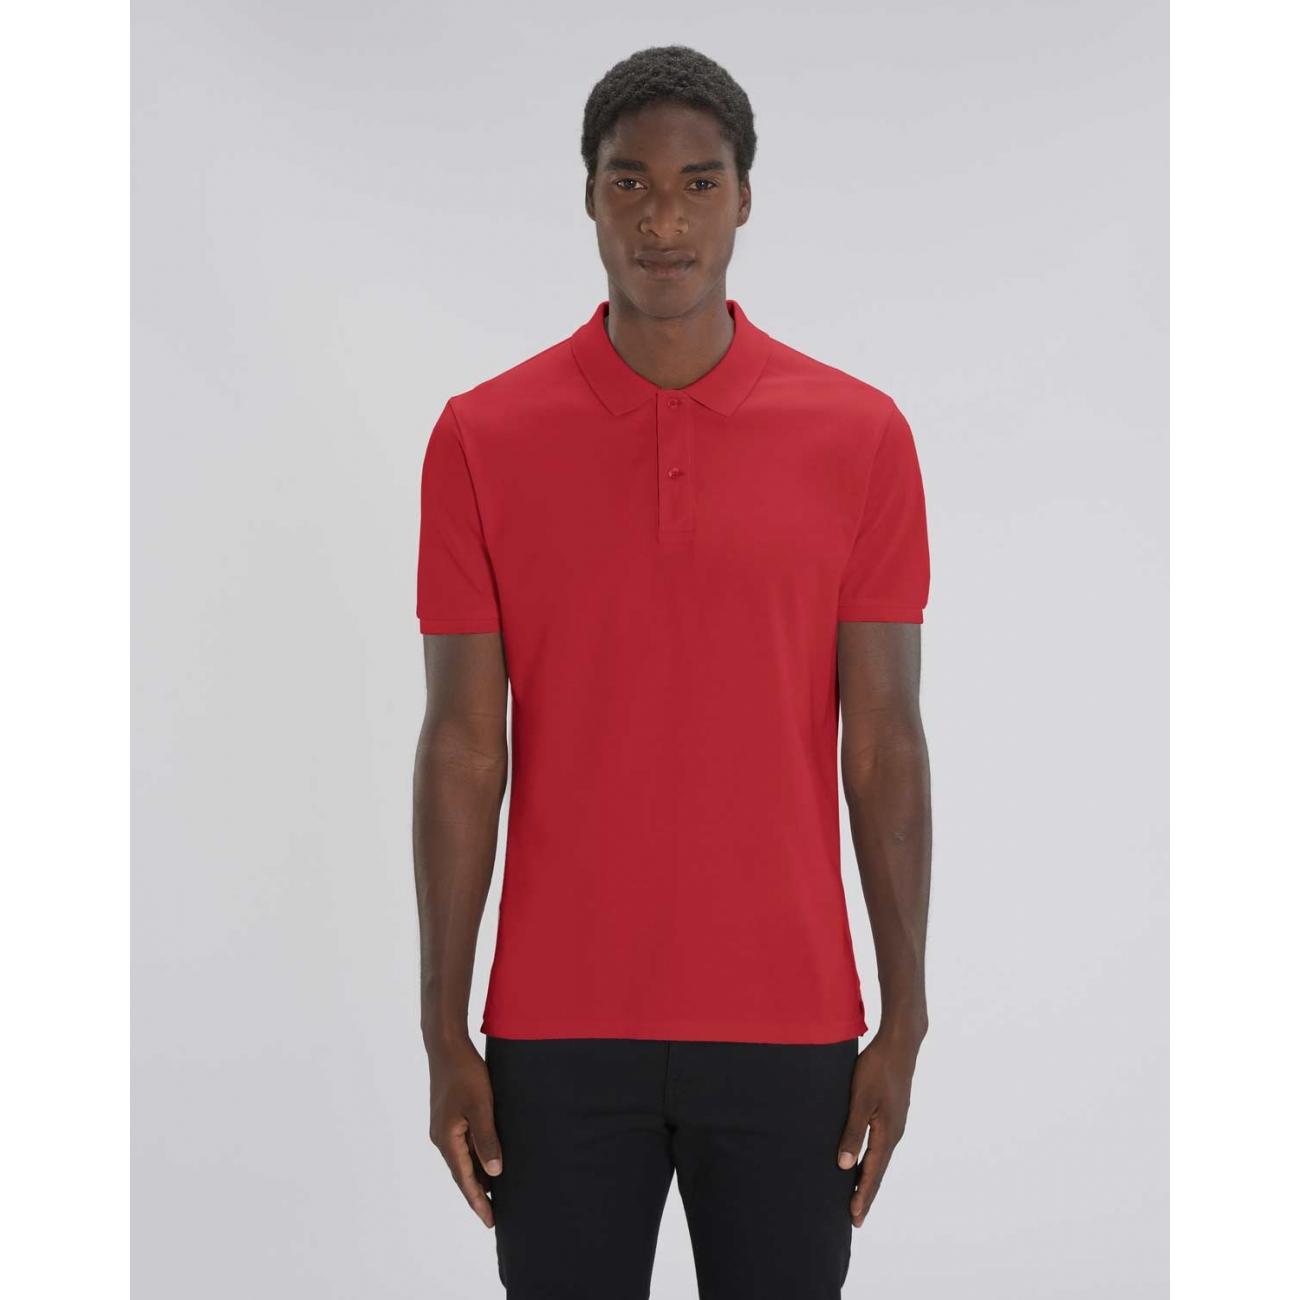 https://tee-shirt-bio.com/7031-thickbox_default/polo-homme-rouge-coton-pique-bio-dedicator-.jpg